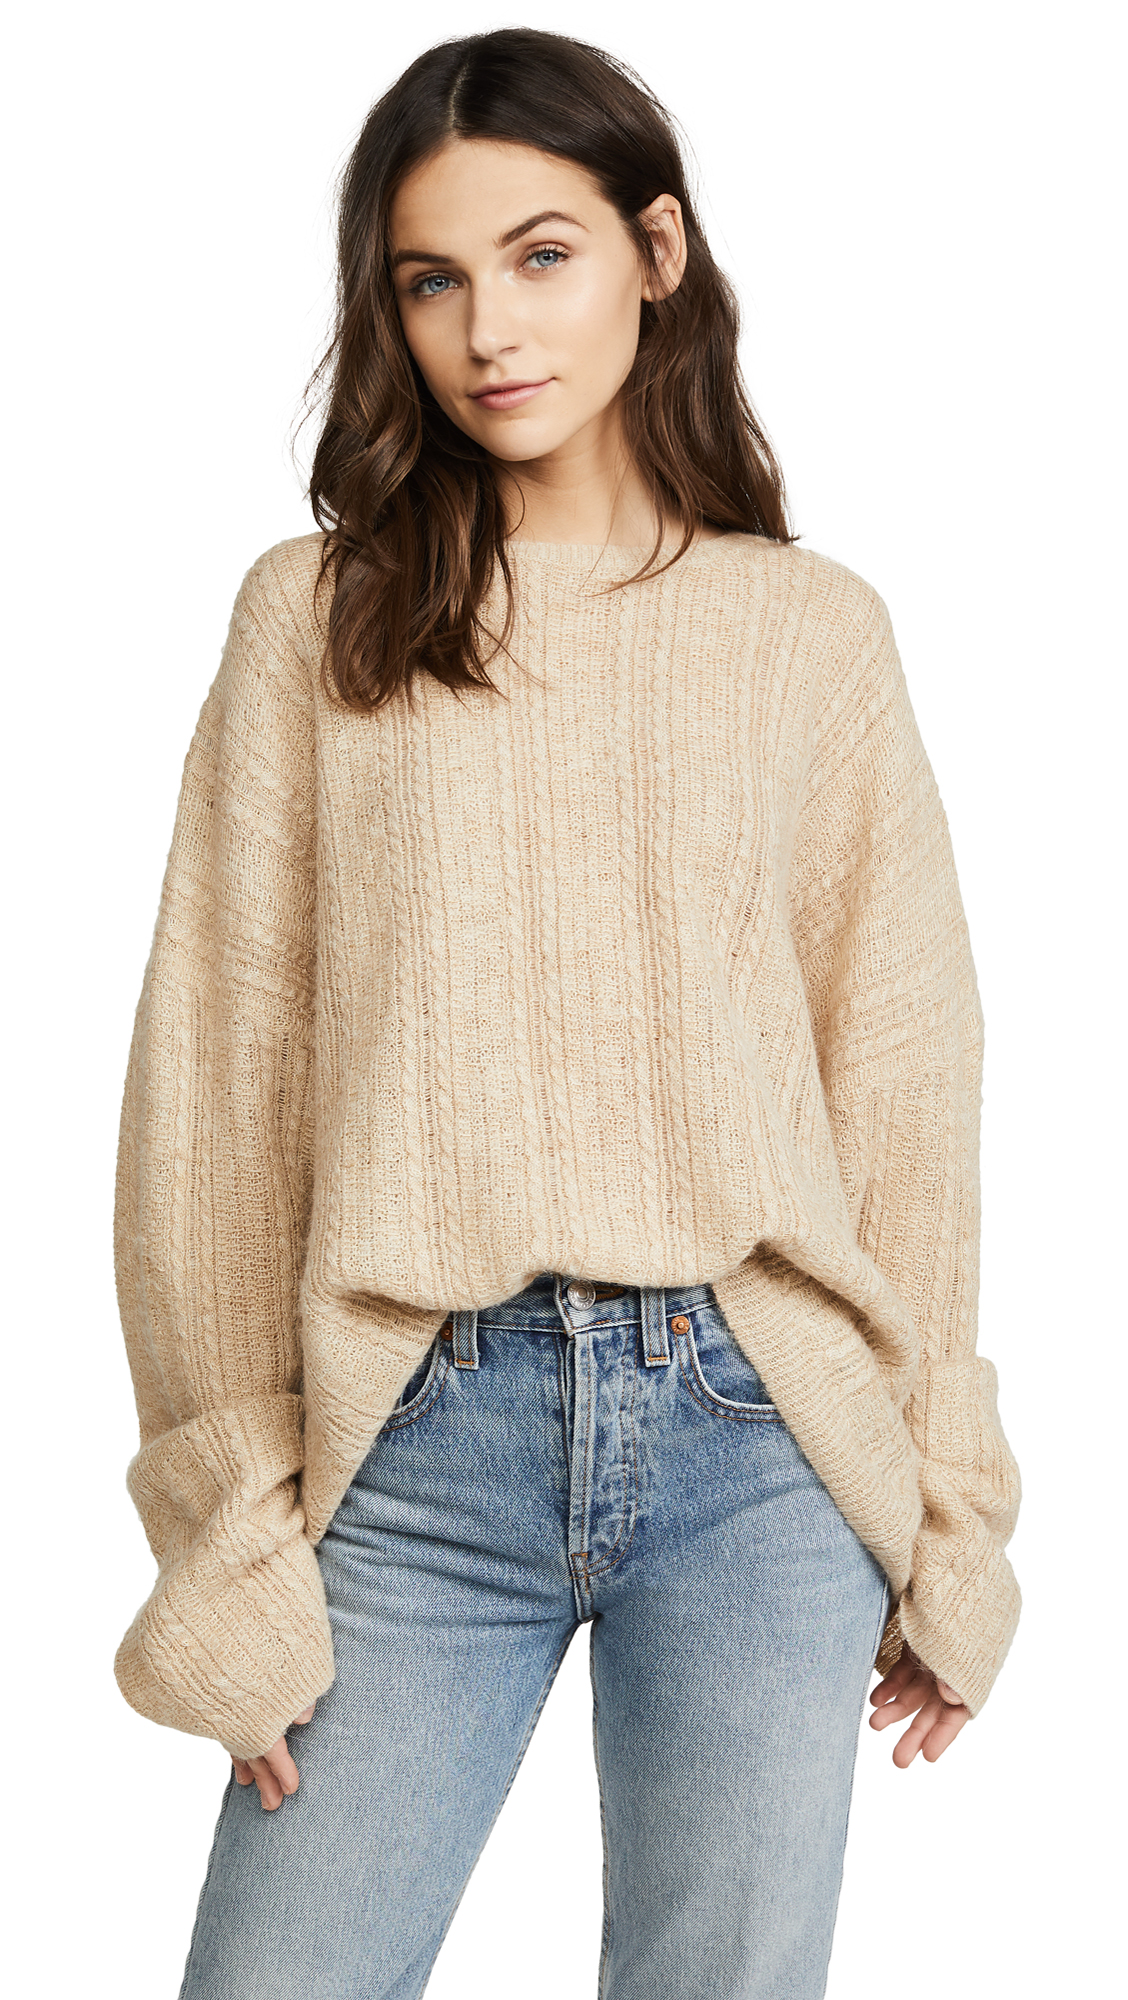 Acne Studios Theda Cable Sweater - Oatmeal Beige Melange